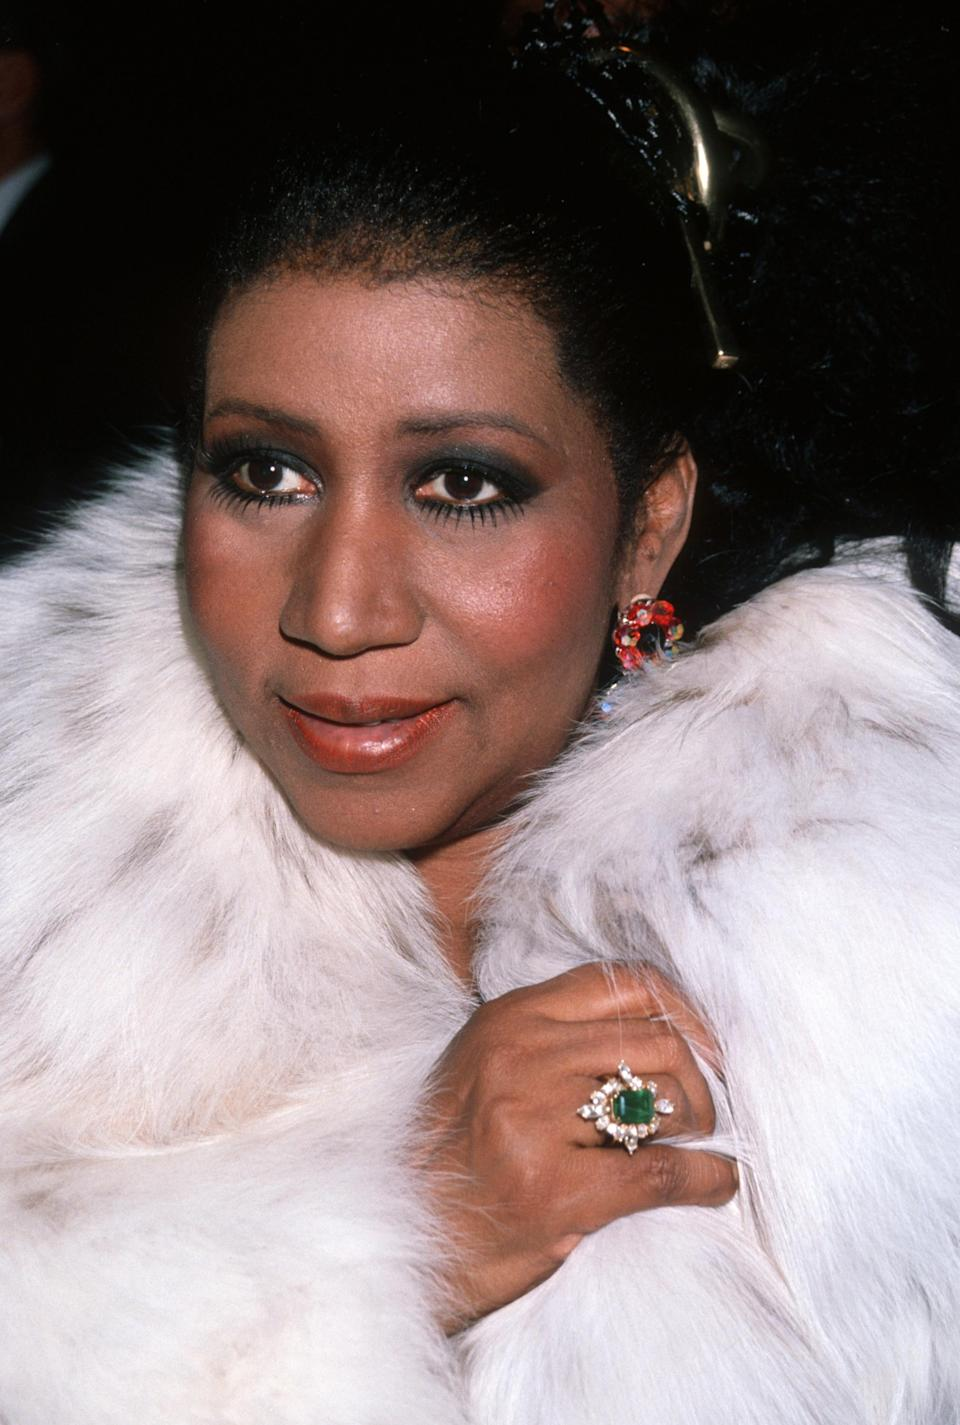 <p>Aretha Franklin wears a luxurious white fur coat, emerald and diamond ring, and smoky eyeshadow for the Night of 100 Stars. (Photo by Ron Galella, Ltd./WireImage) </p>